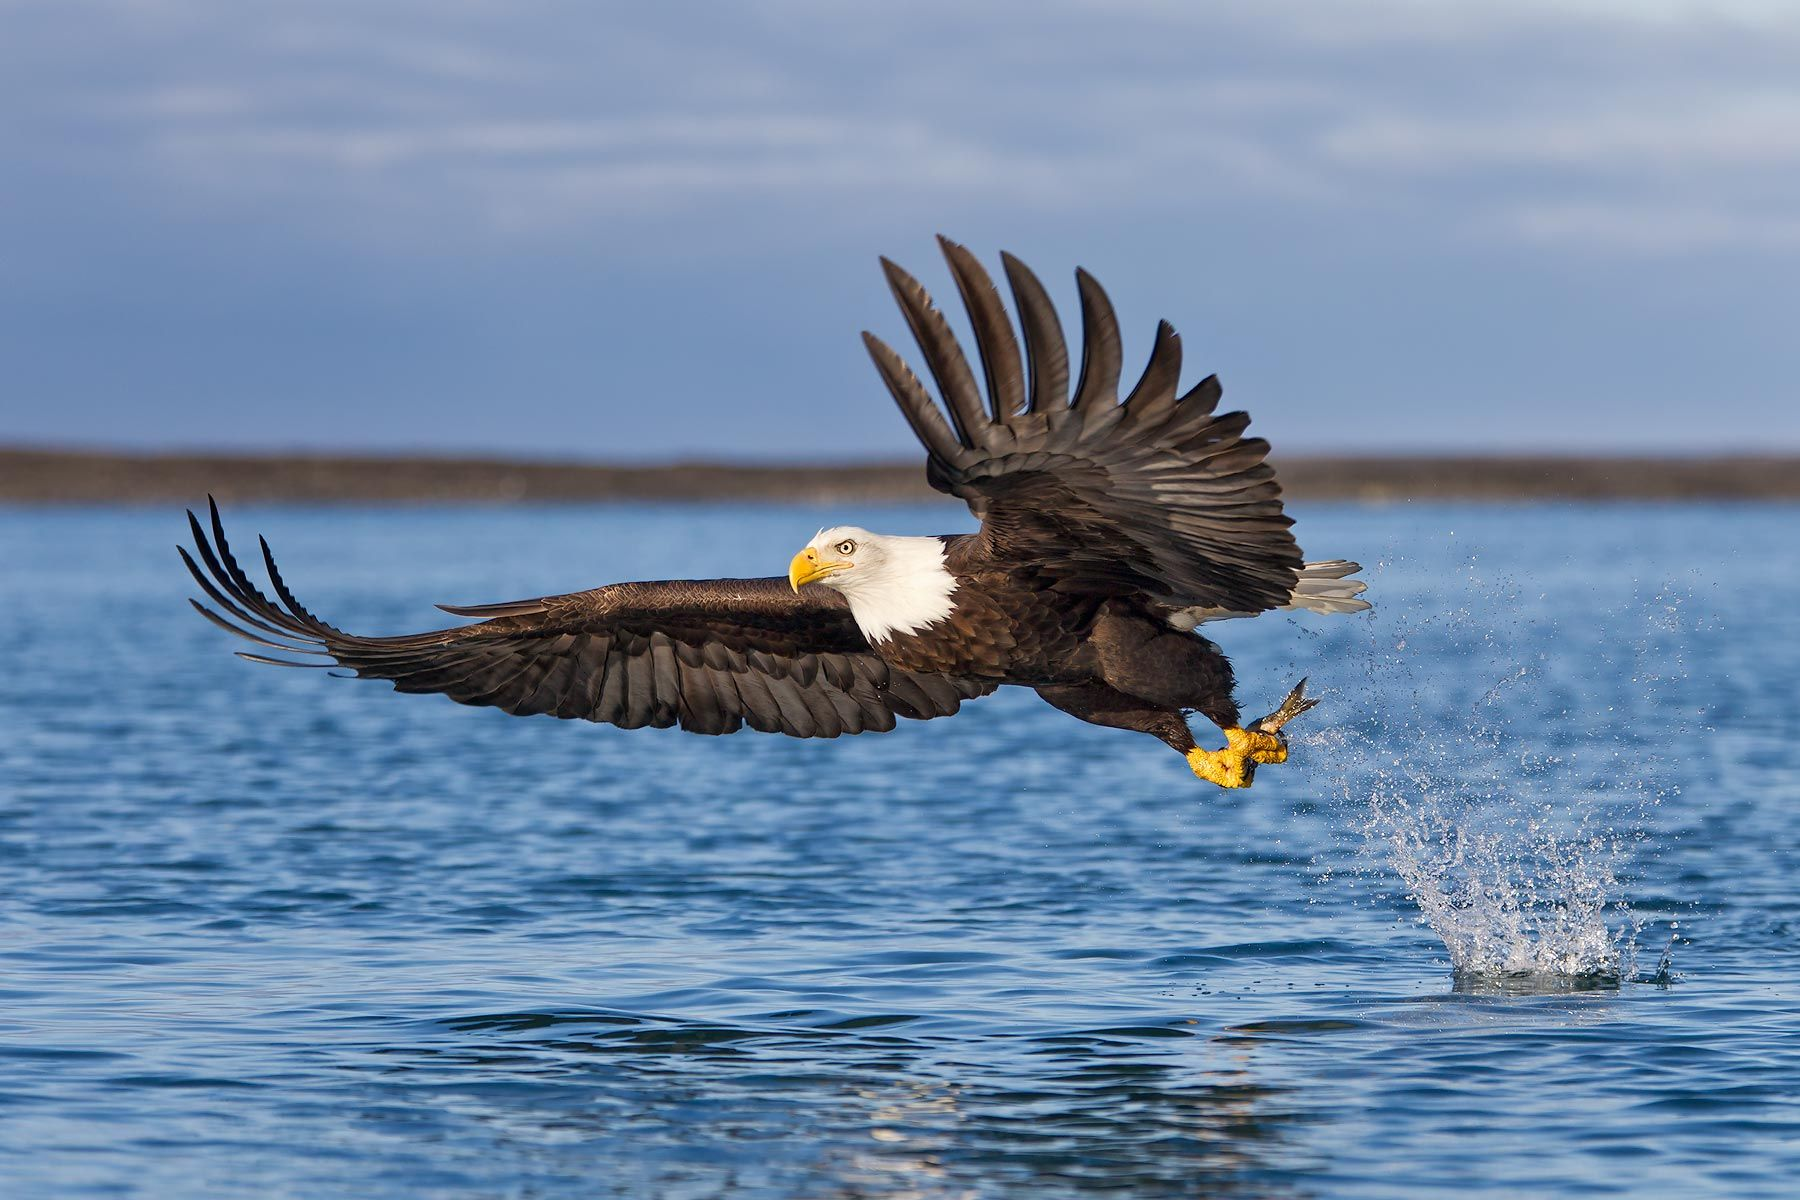 Bald-eagle-catching-fish-wings-forward-spit-bkgd-E07G7825-Kachemak-Bay,-Homer,-AK.jpg